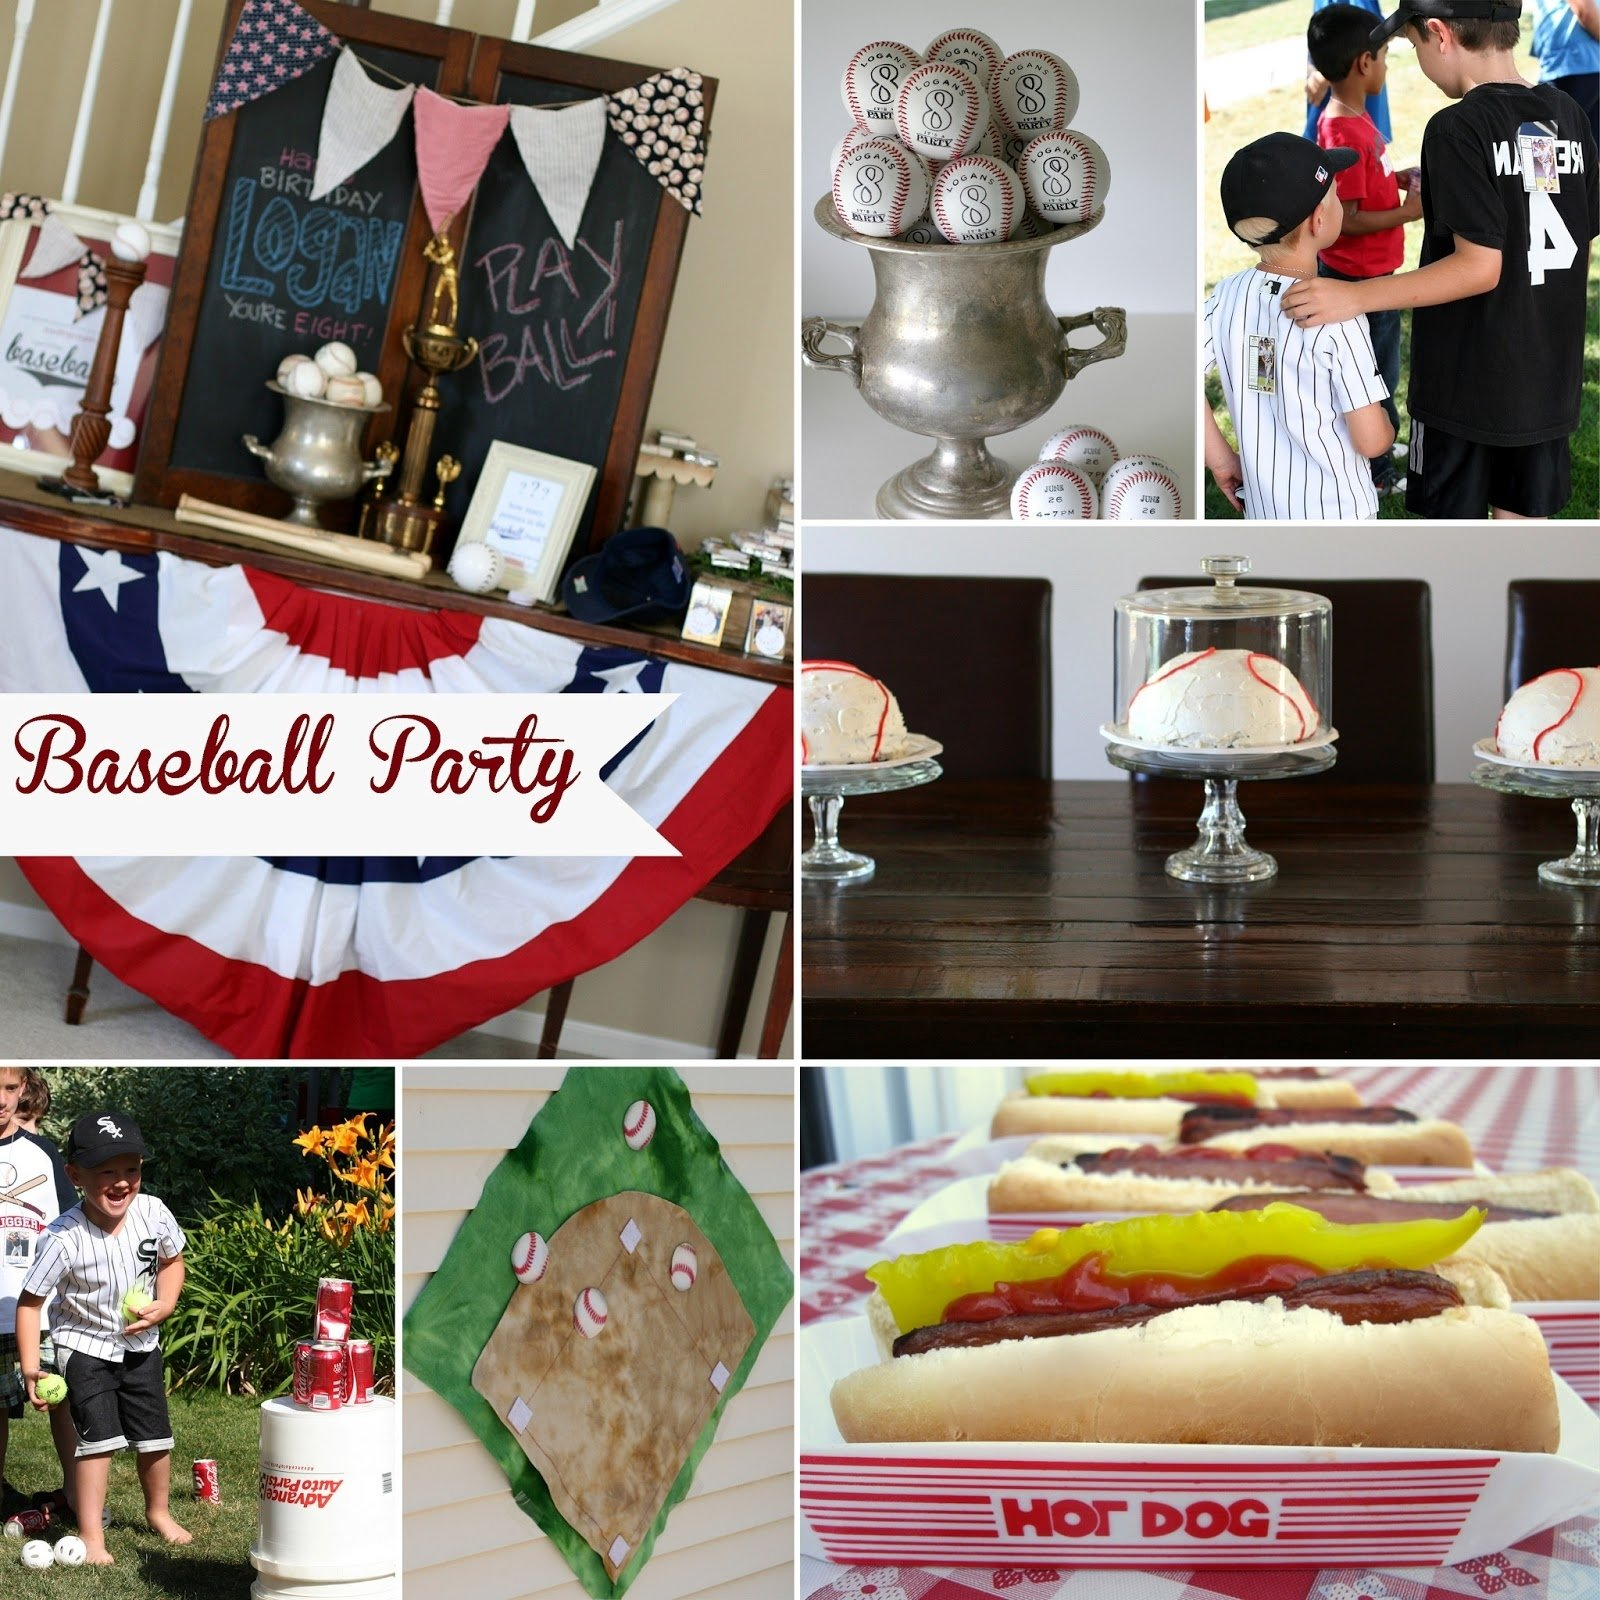 10 Fabulous Birthday Party Ideas For 8 Year Old Boy notable nest baseball birthday party 3 2021